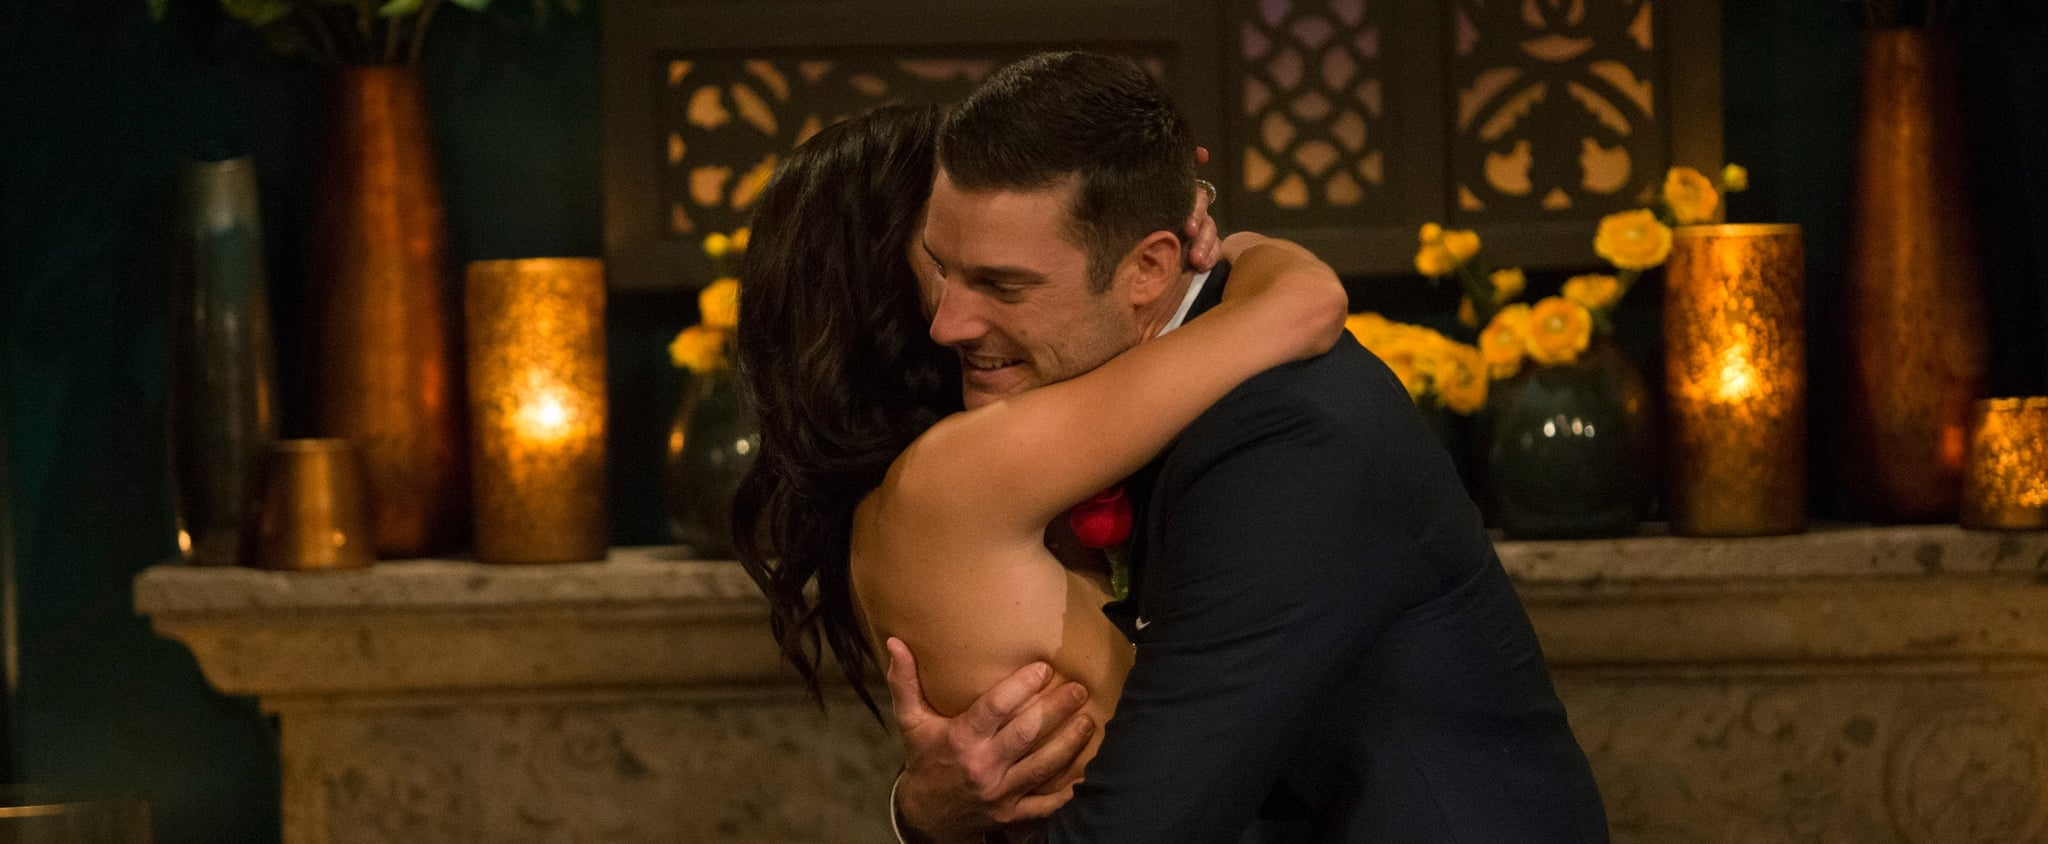 Who Is Garrett Yrigoyen From The Bachelorette?